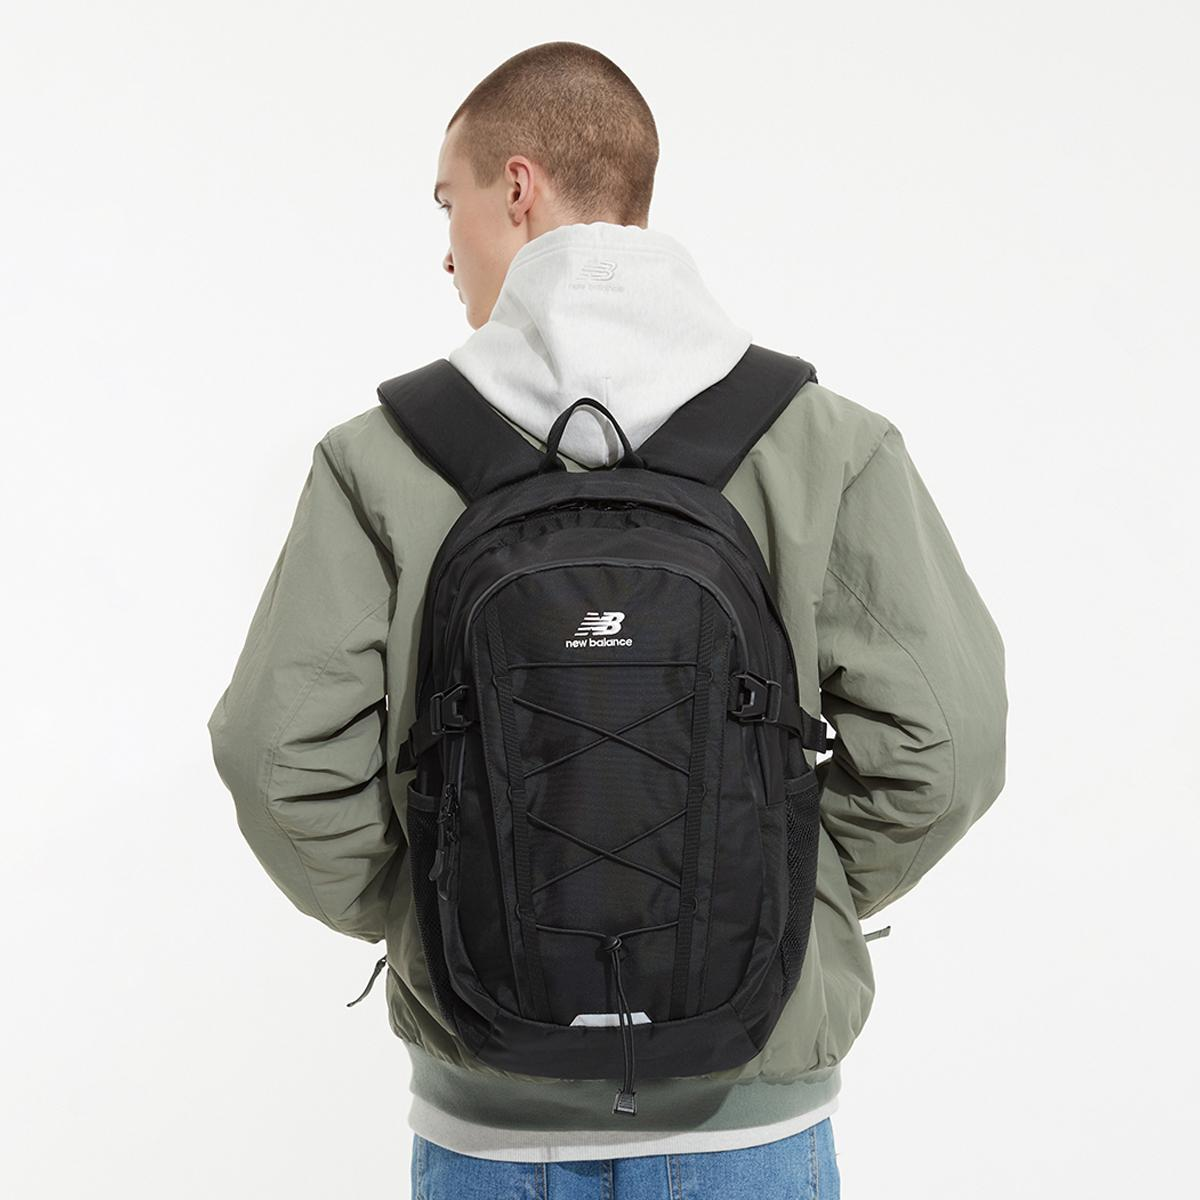 2Pik Mini Backpack